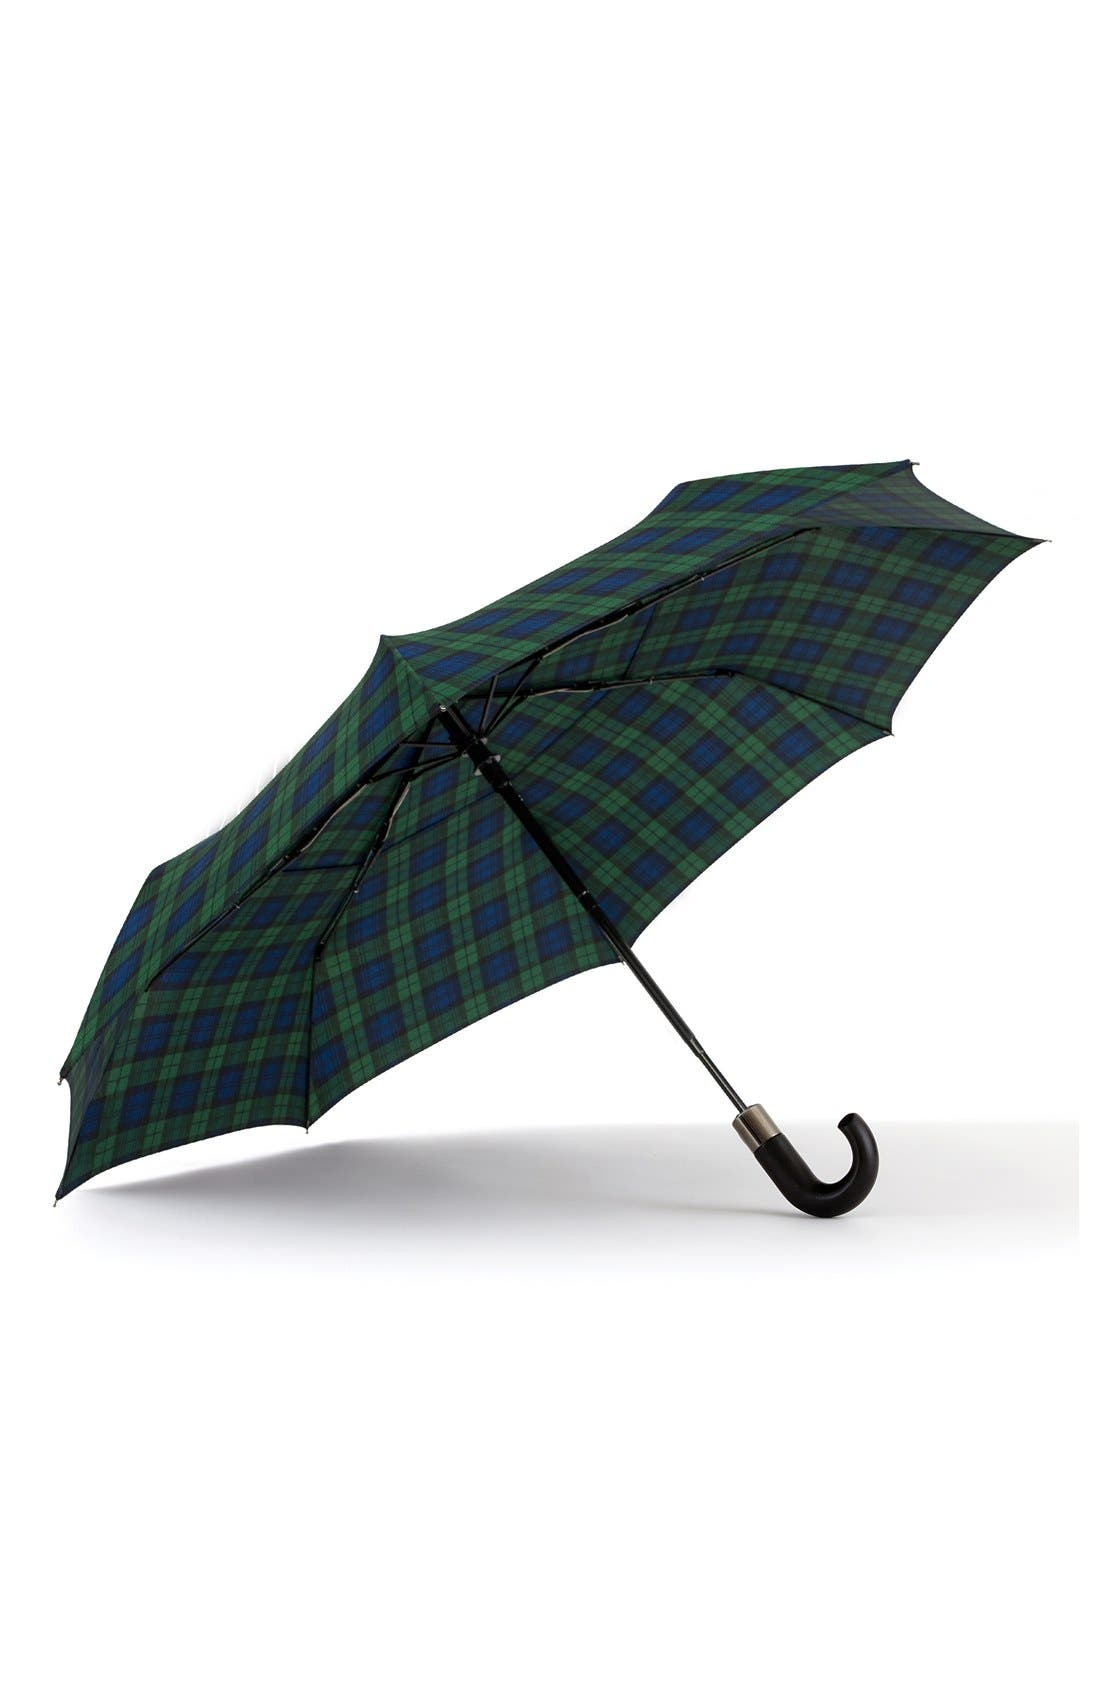 'WindPro<sup>®</sup>' Auto Open & Close Umbrella,                             Main thumbnail 1, color,                             001